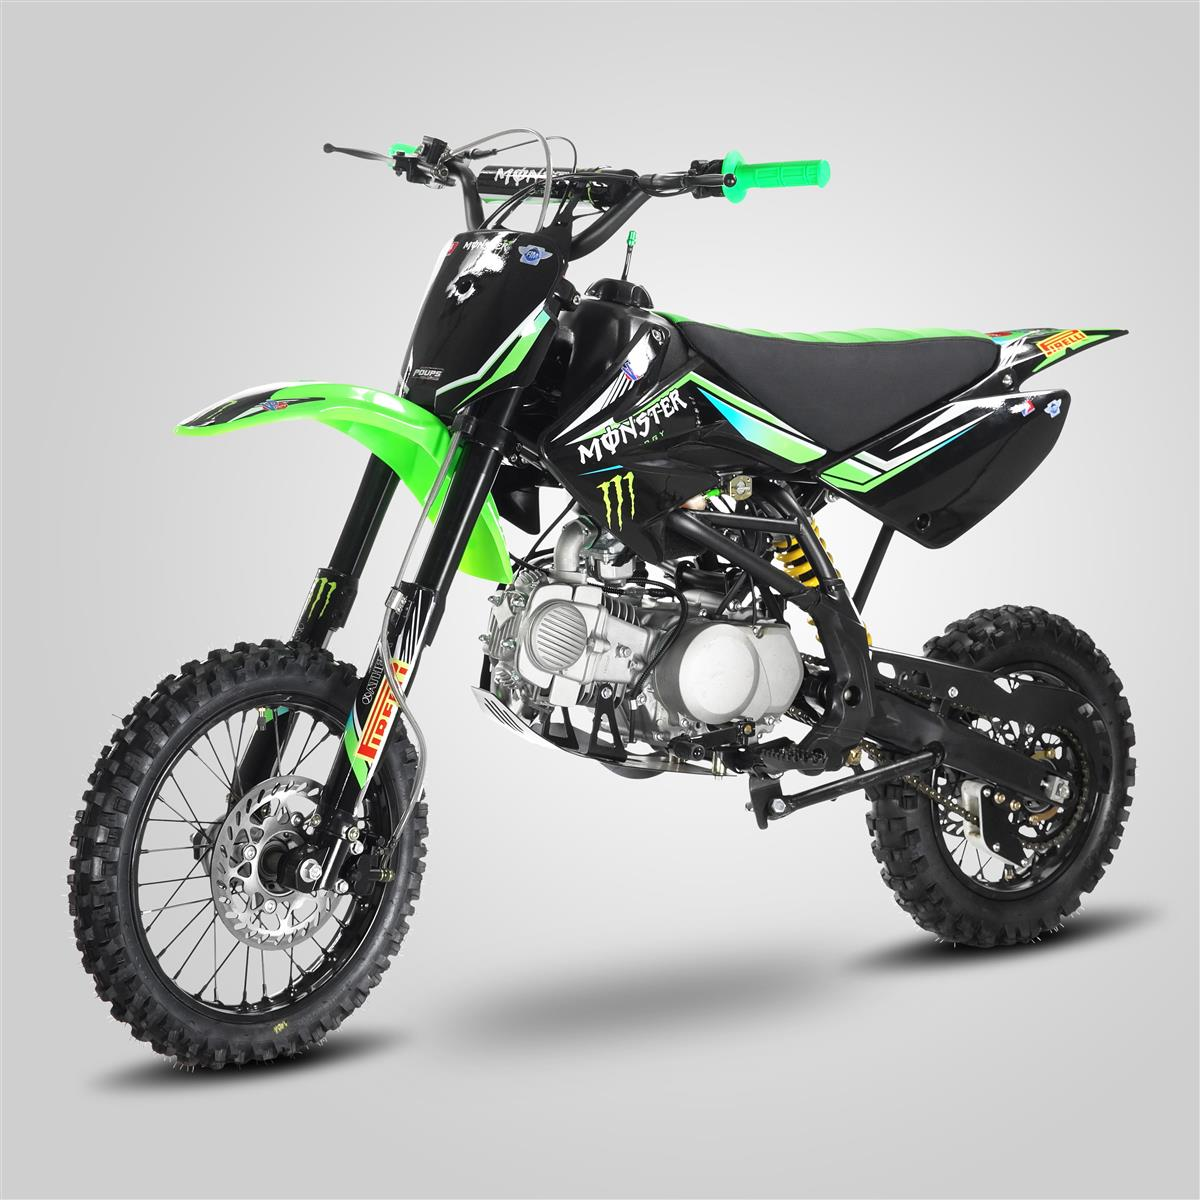 pit bike smx mx6 monster 140cc 12 14 smallmx dirt bike pit bike quads minimoto. Black Bedroom Furniture Sets. Home Design Ideas